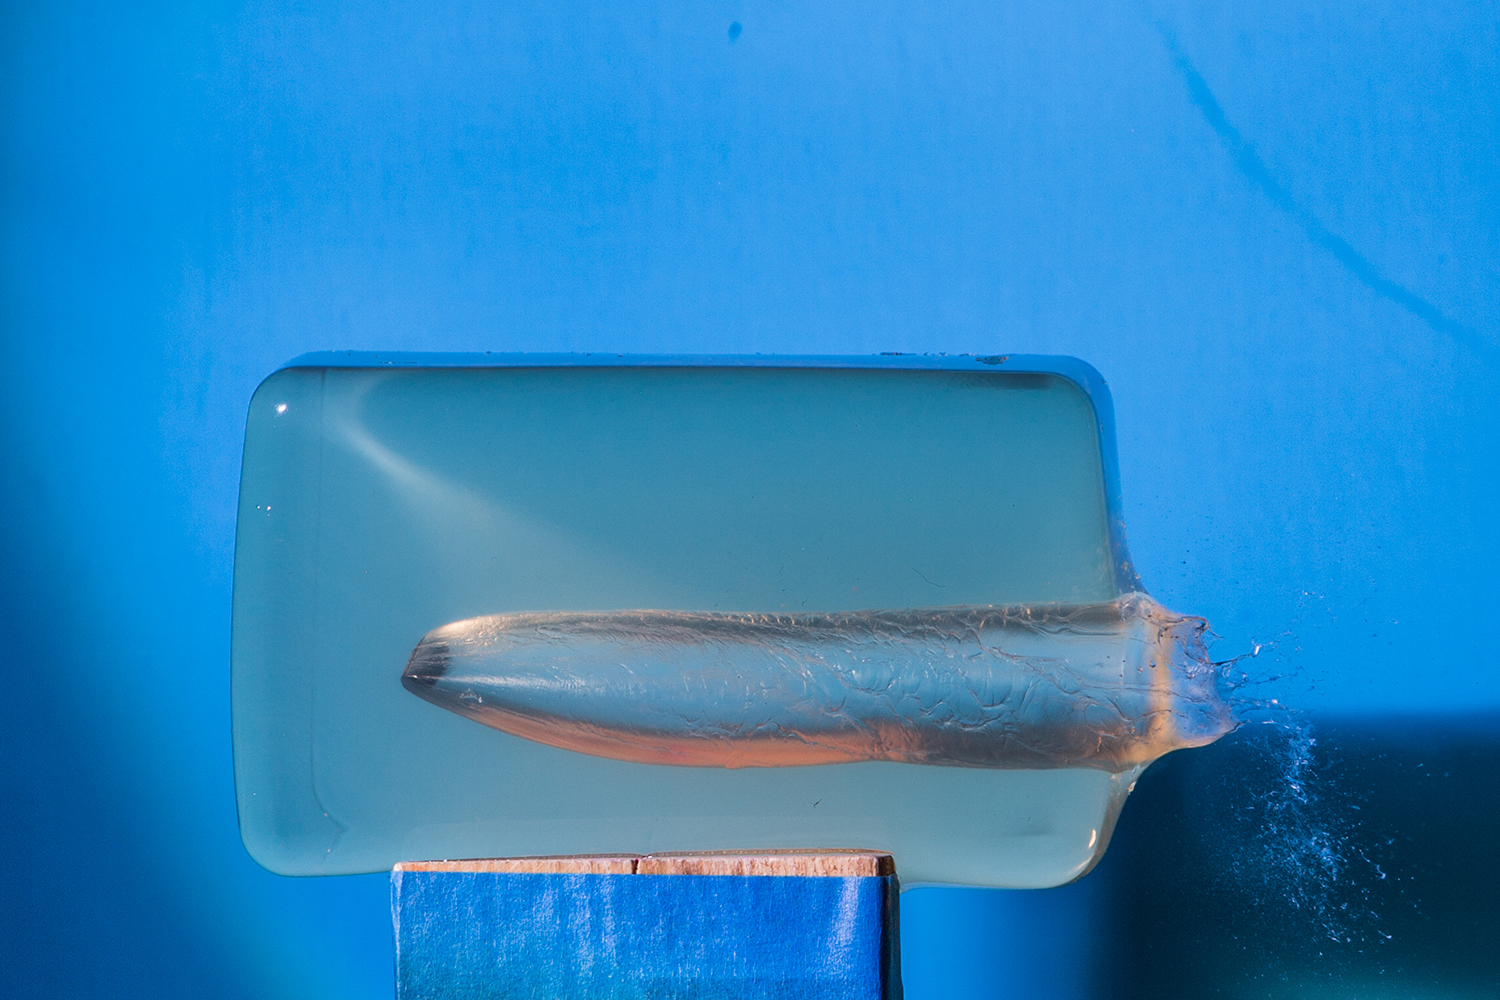 A photo of a bullet going through jello